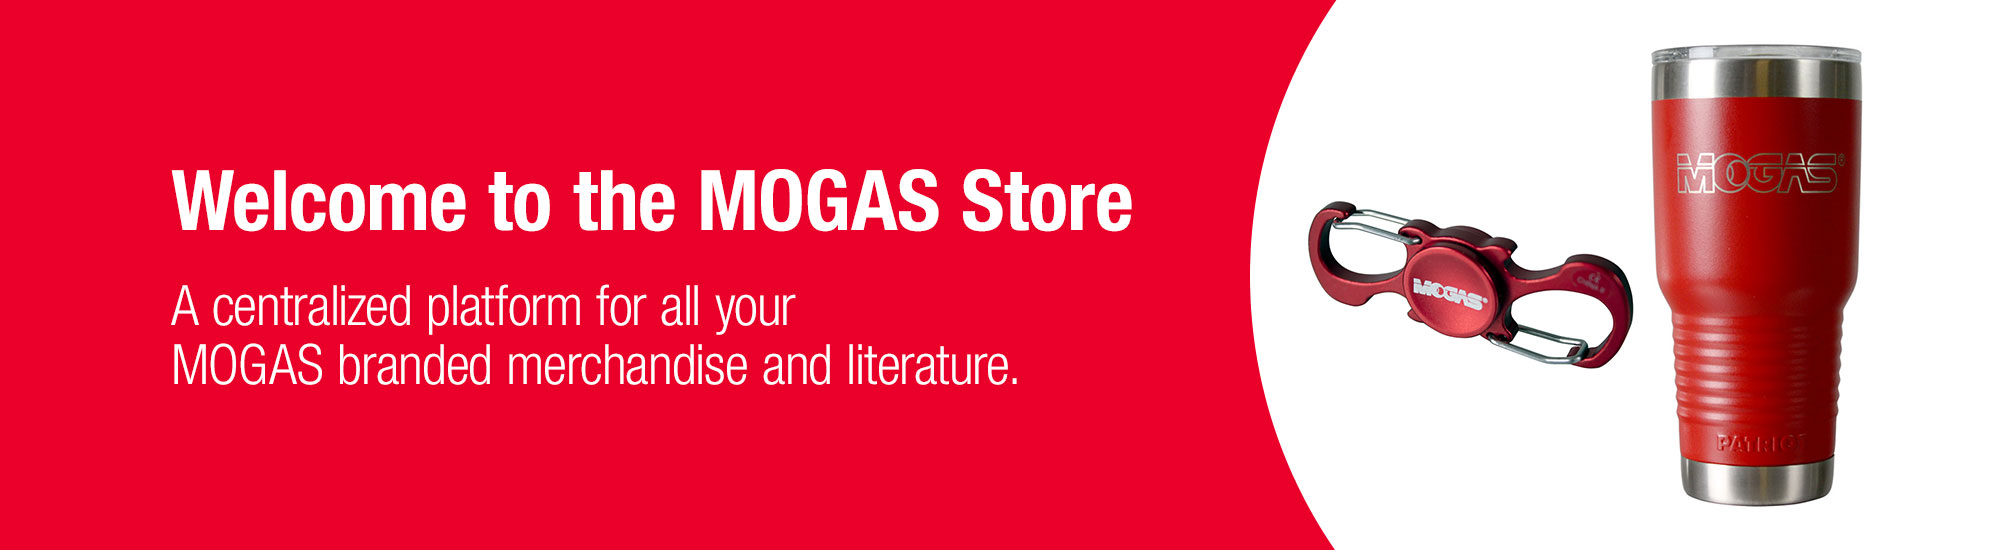 Welcome to the MOGAS Store